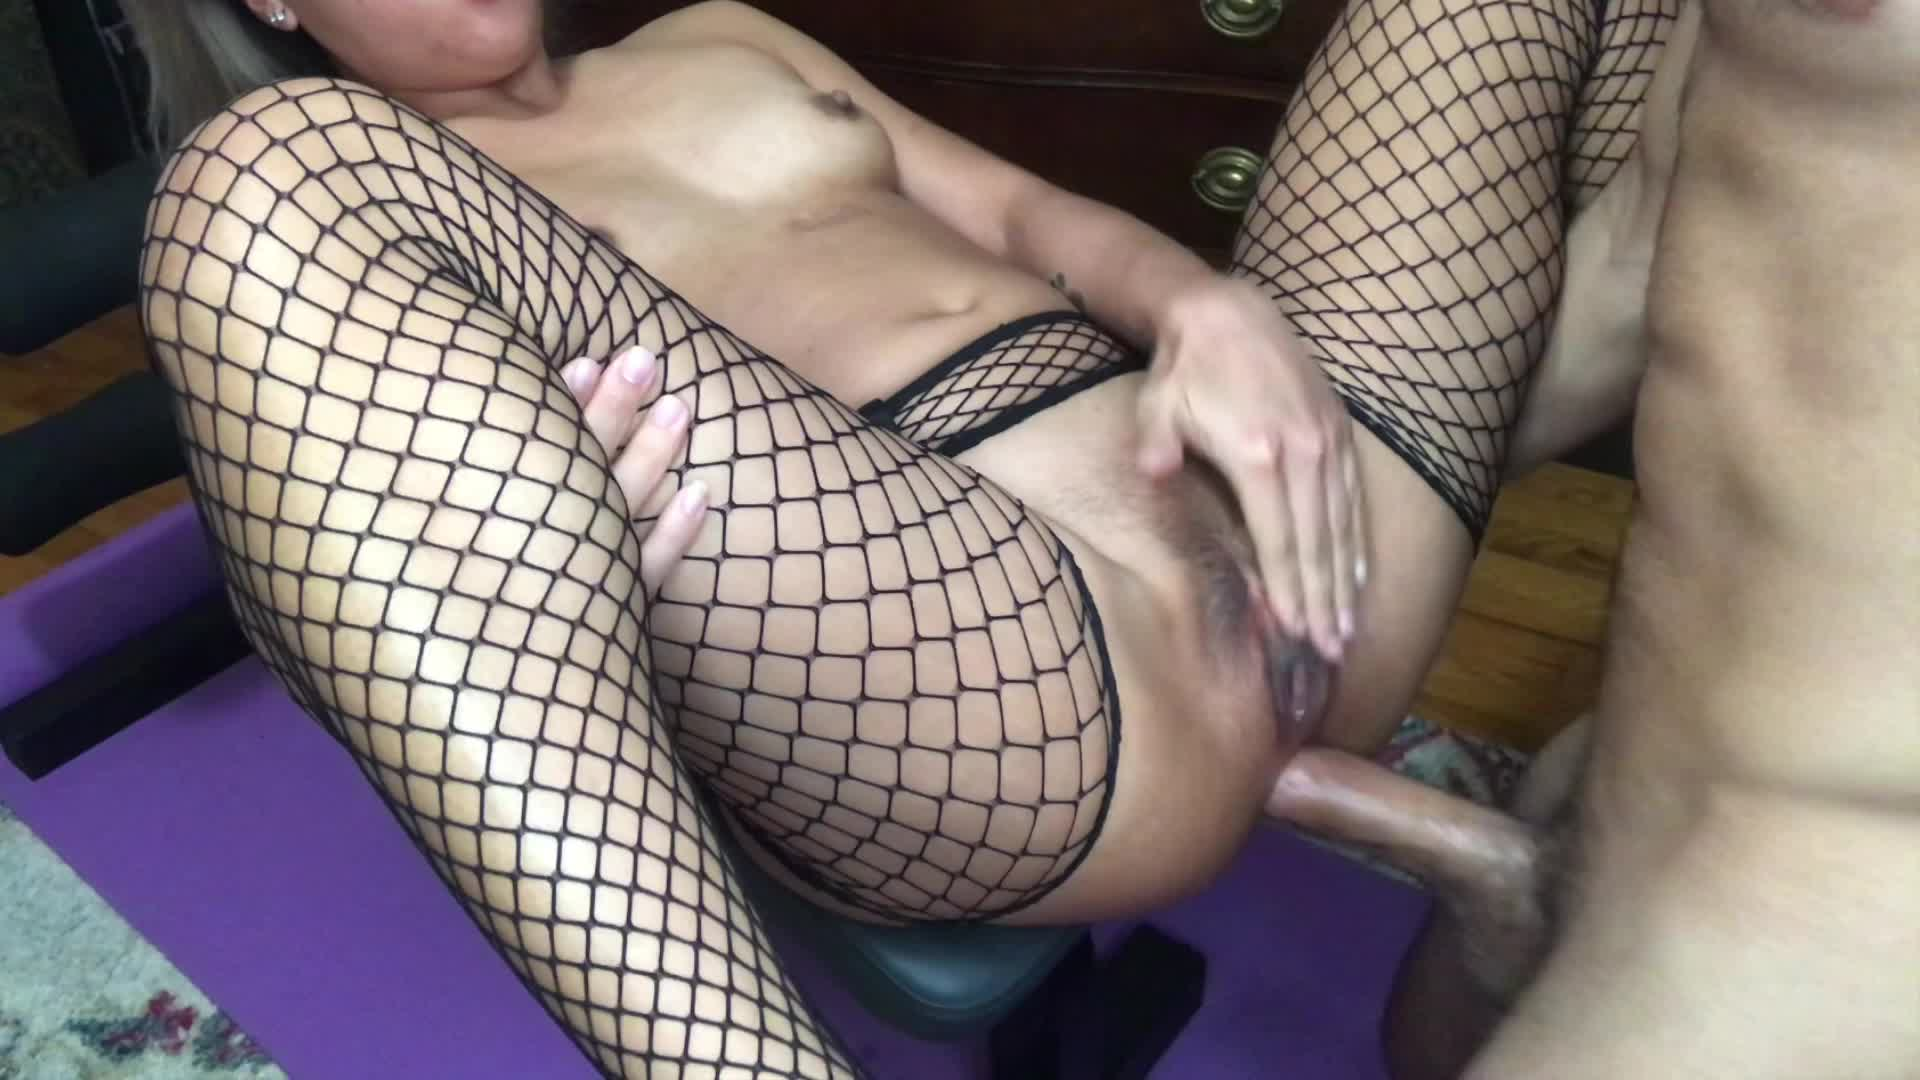 Fuck my ass so hard and deep I can't stop squirting please 😩